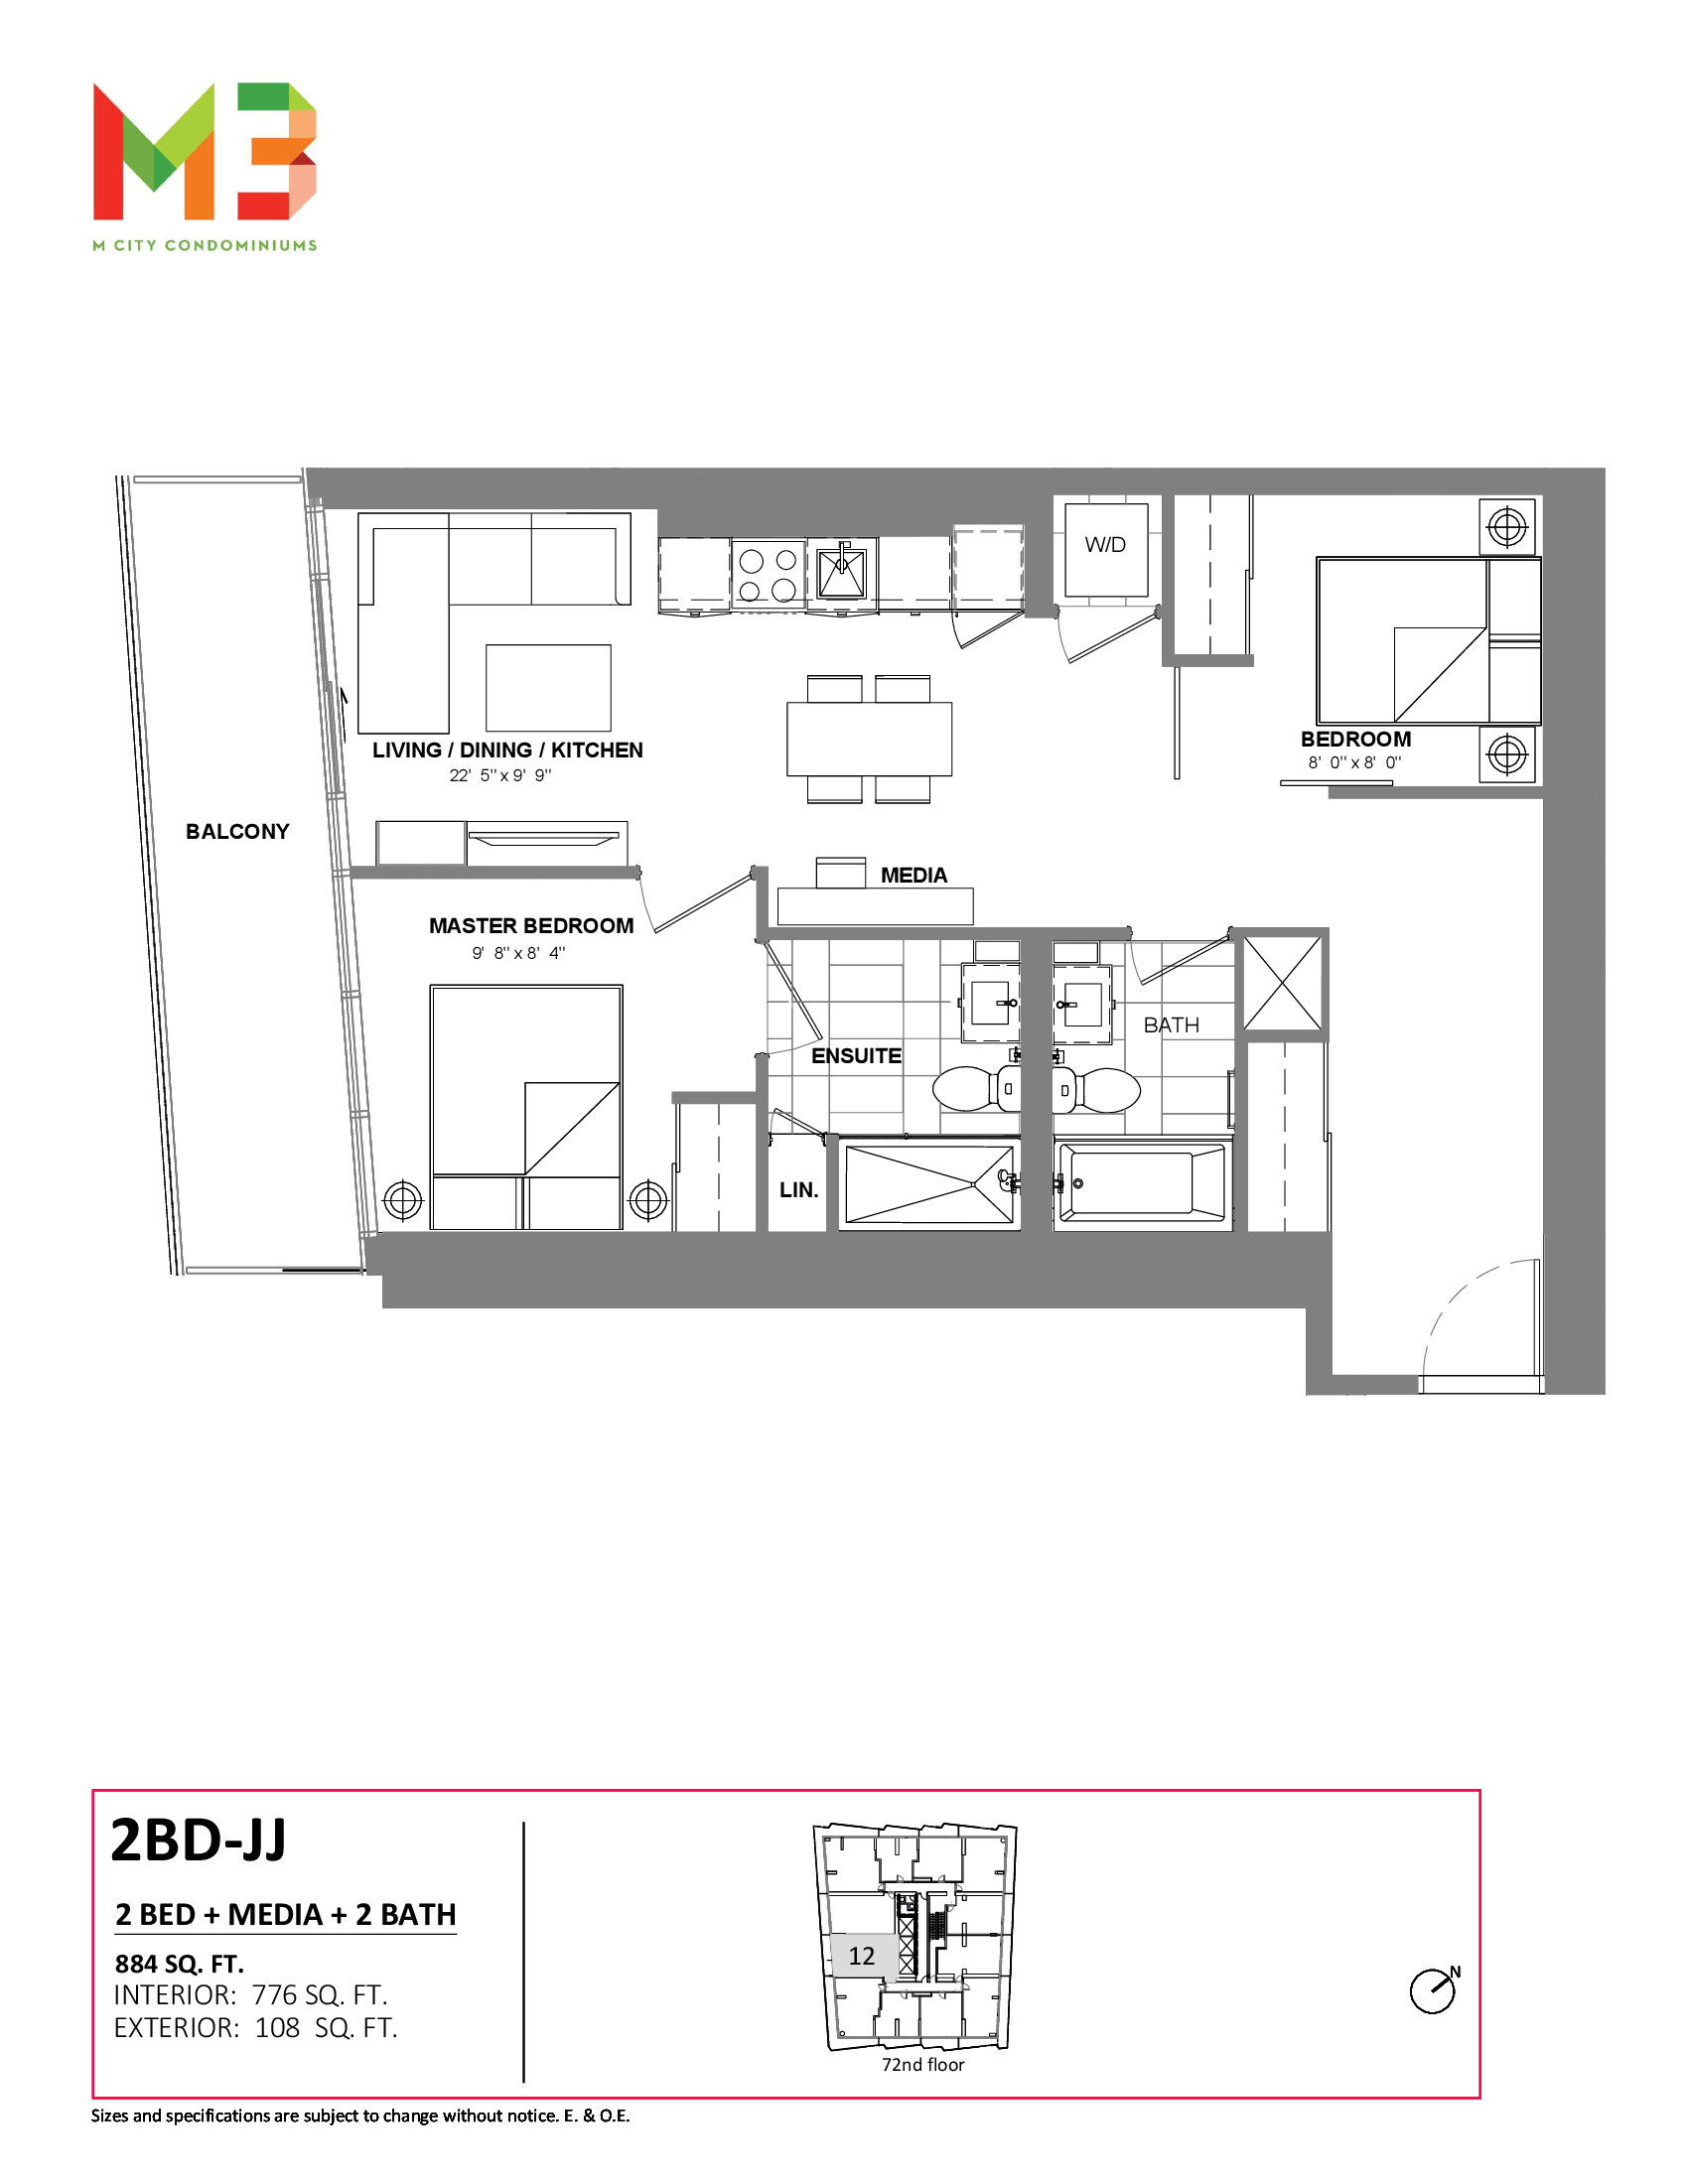 2BD-JJ Floor Plan at M3 Condos - 776 sq.ft